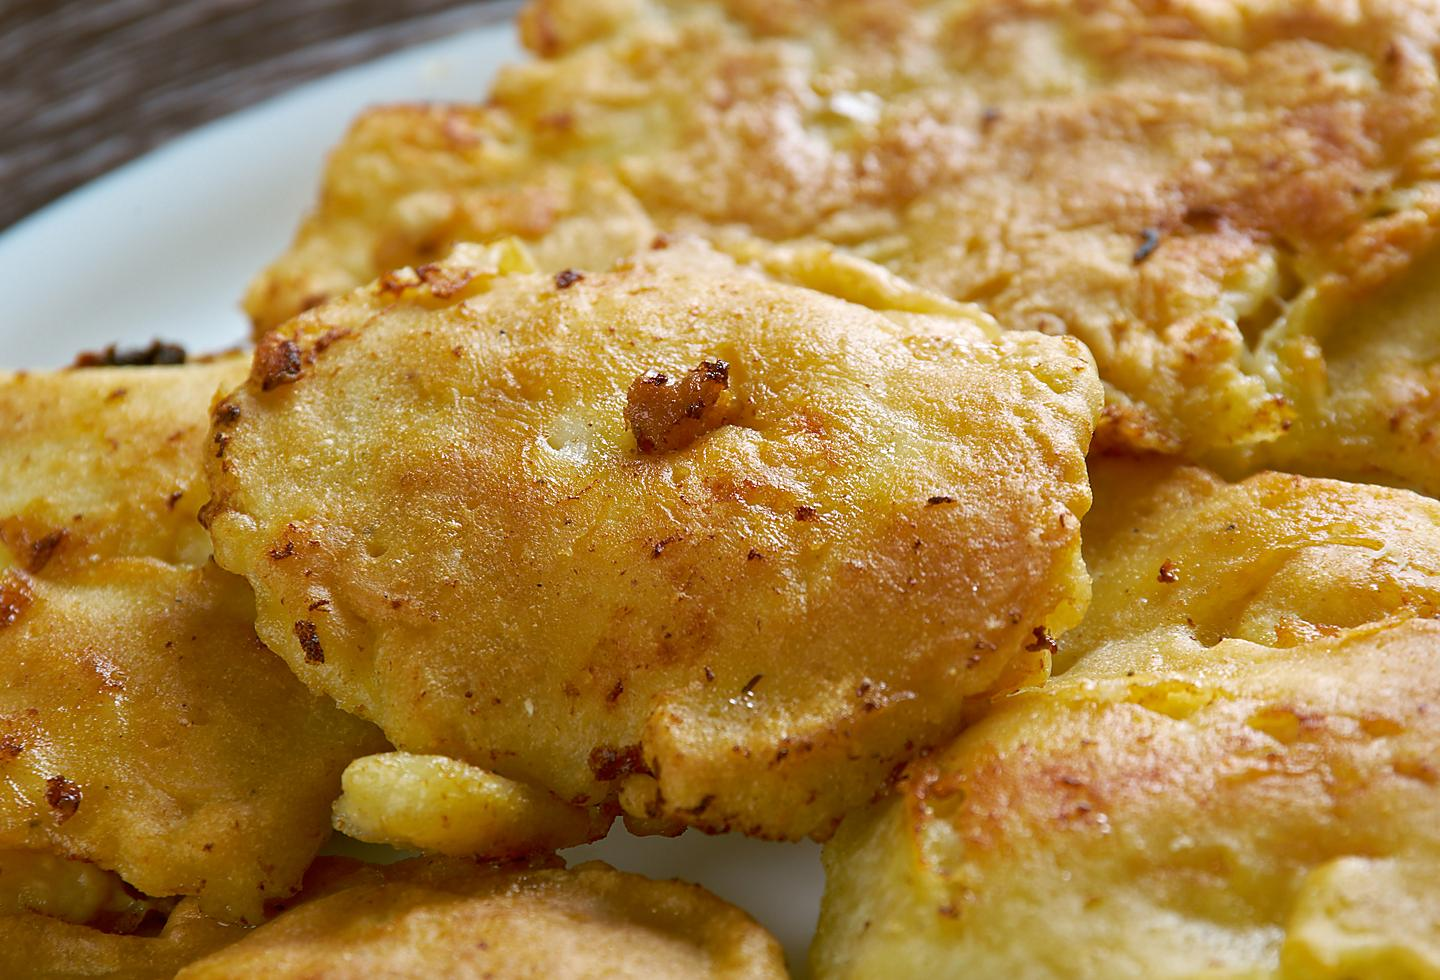 Bacalaitos, fried cod traditional food in puerto rico.